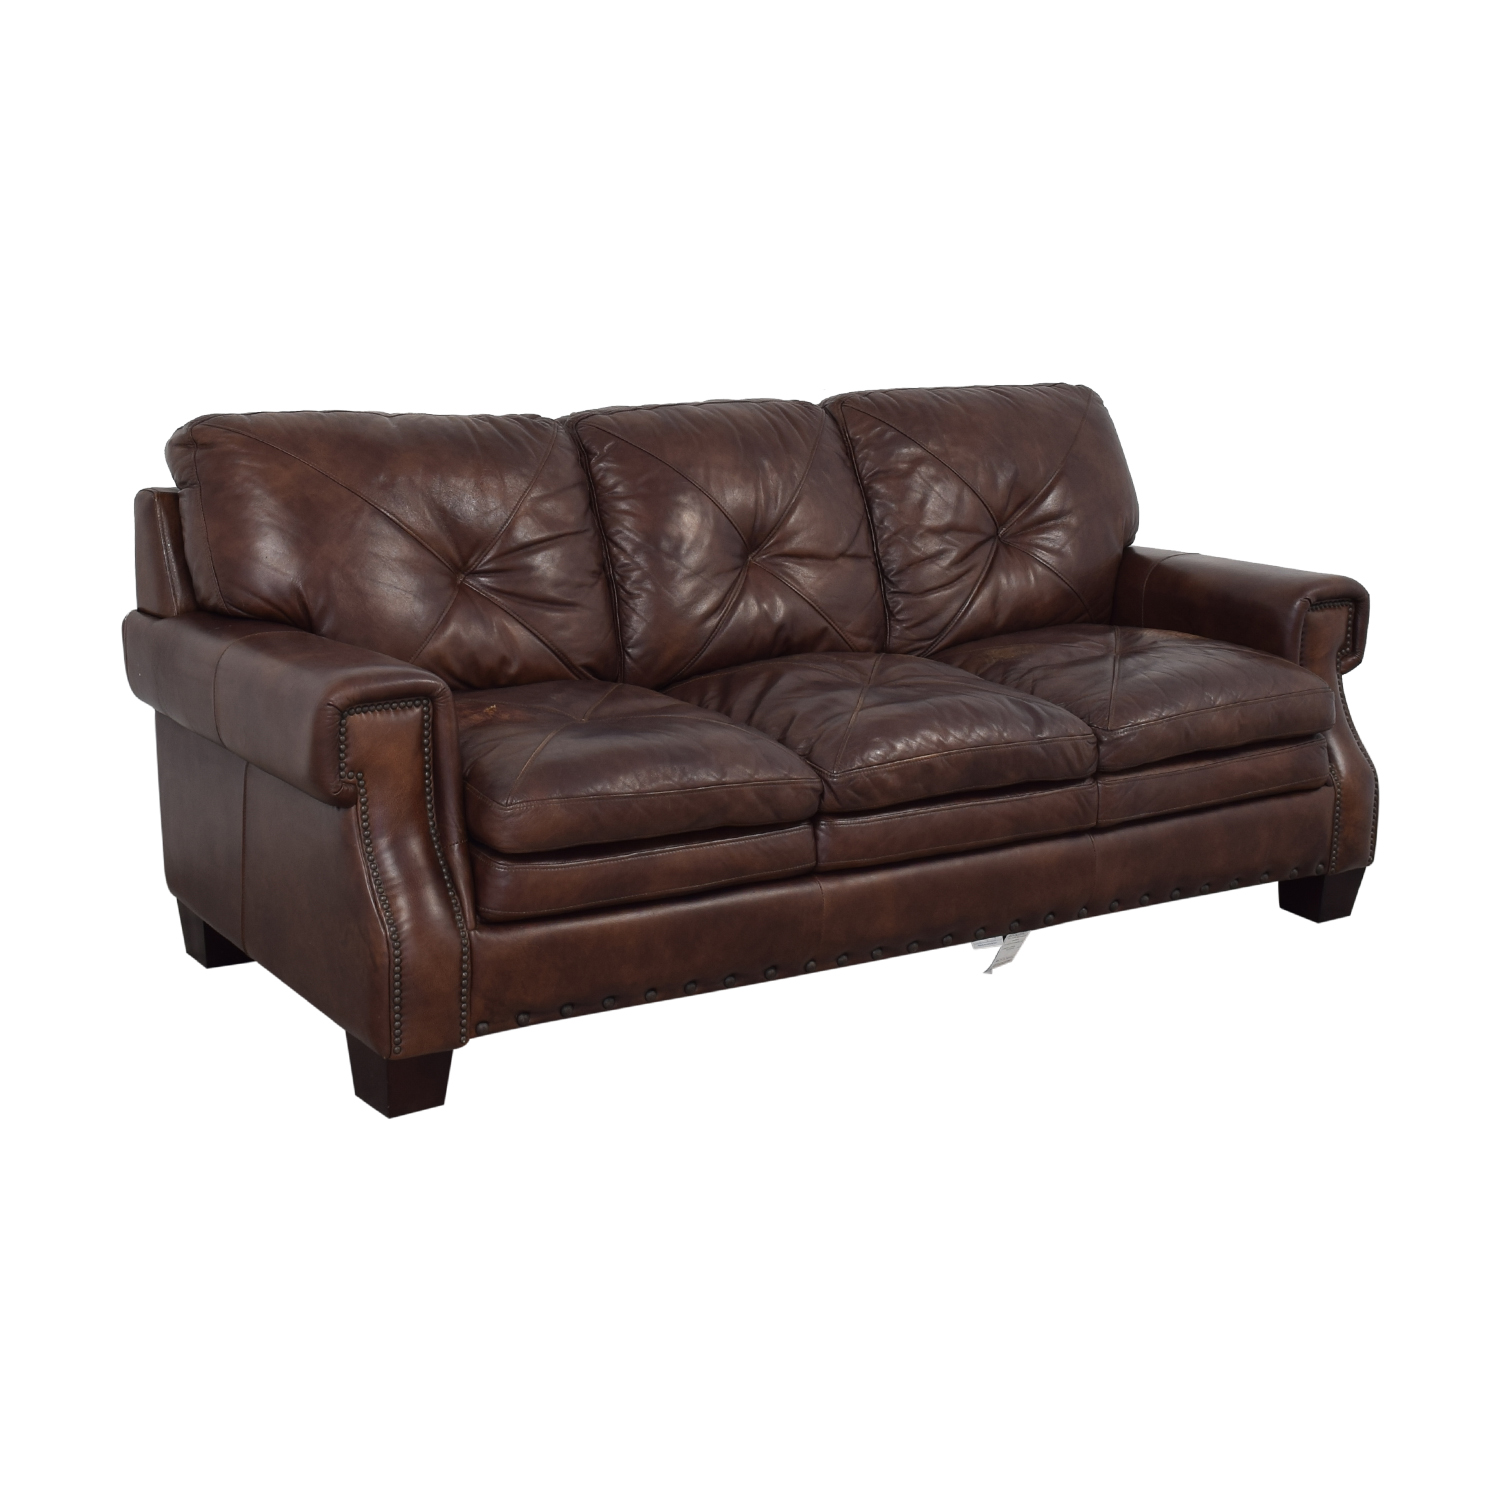 Bob's Discount Furniture Bob's Discount Furniture Kennedy Leather Sofa on sale